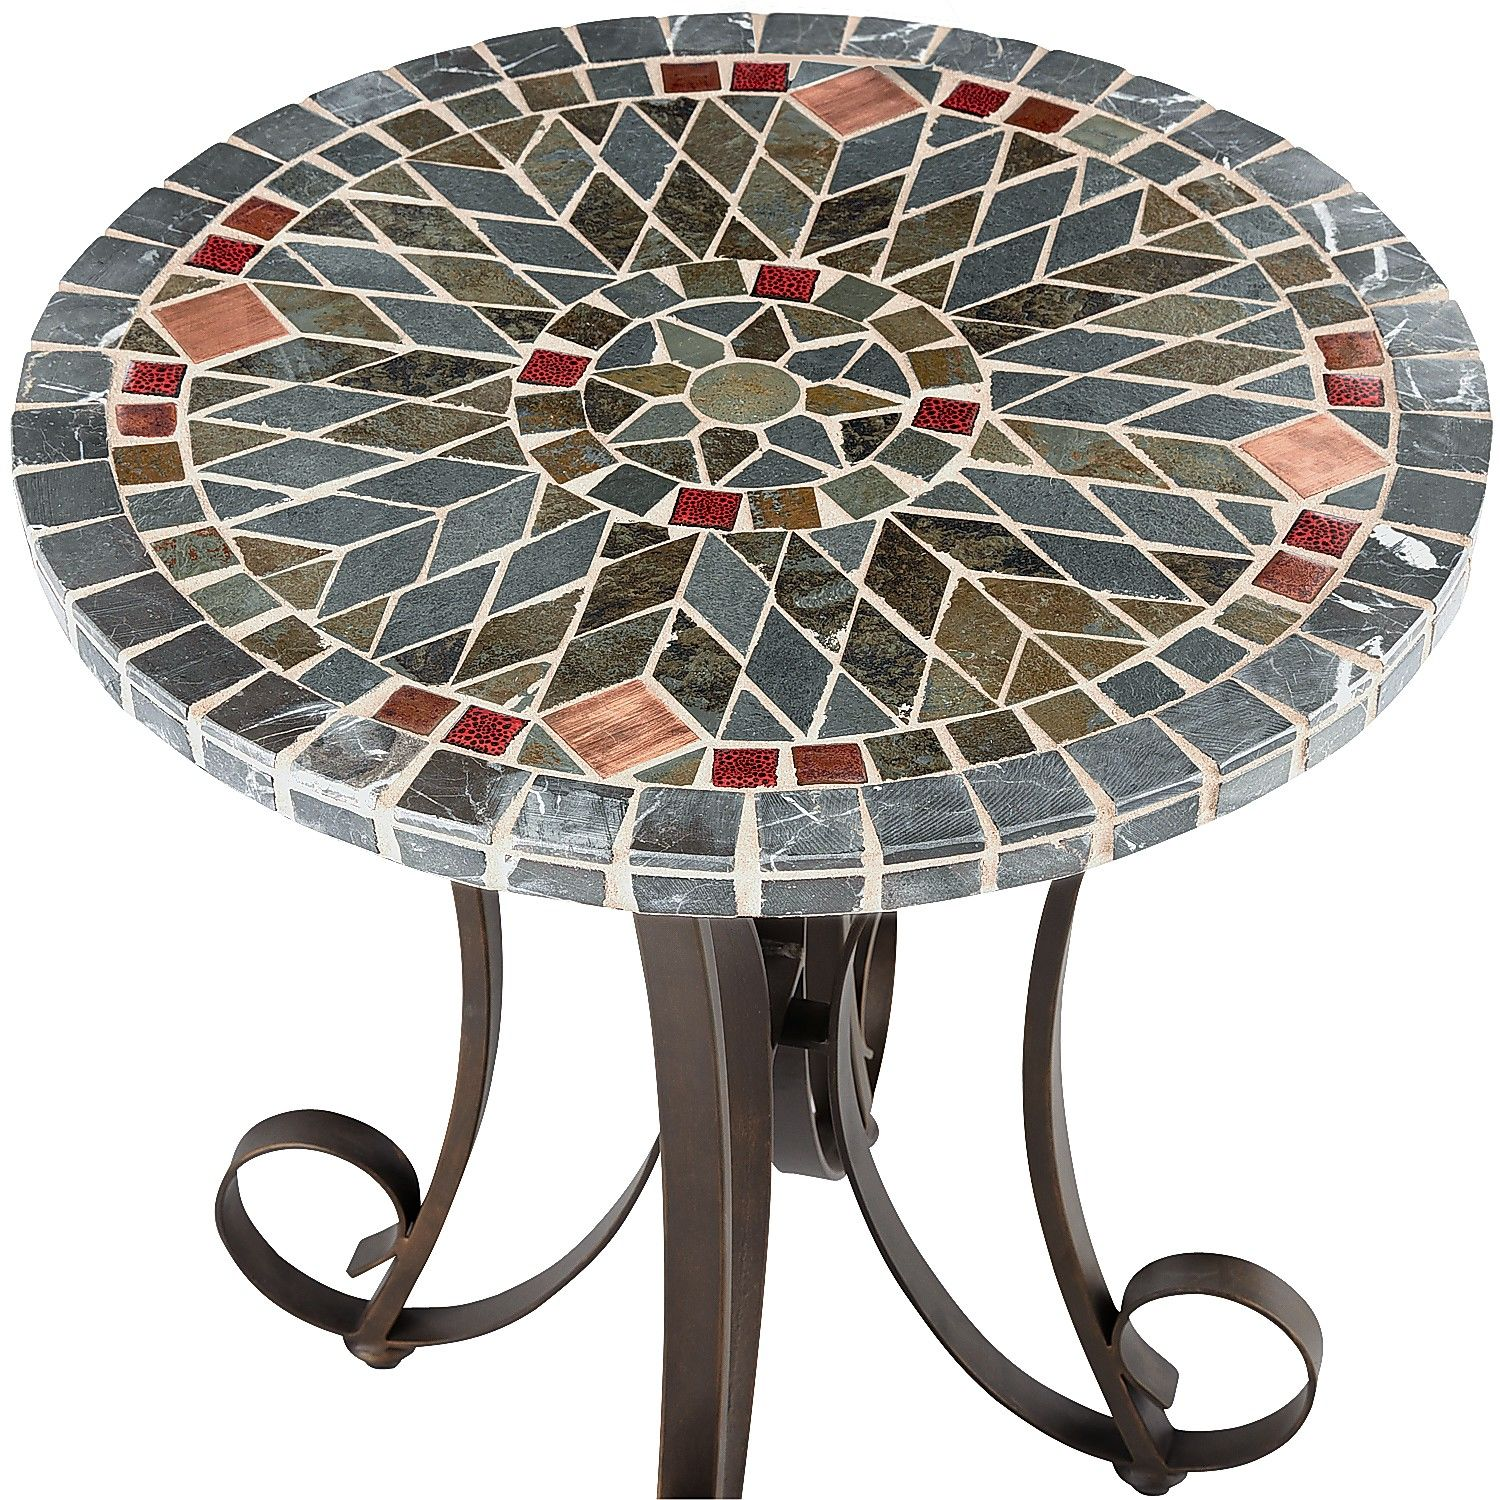 verazze mosaic accent table pier imports chrome tables sunflower hiend accents contemporary bedroom lamps small dresser oval coffee with shelf half round rustic wine rack home